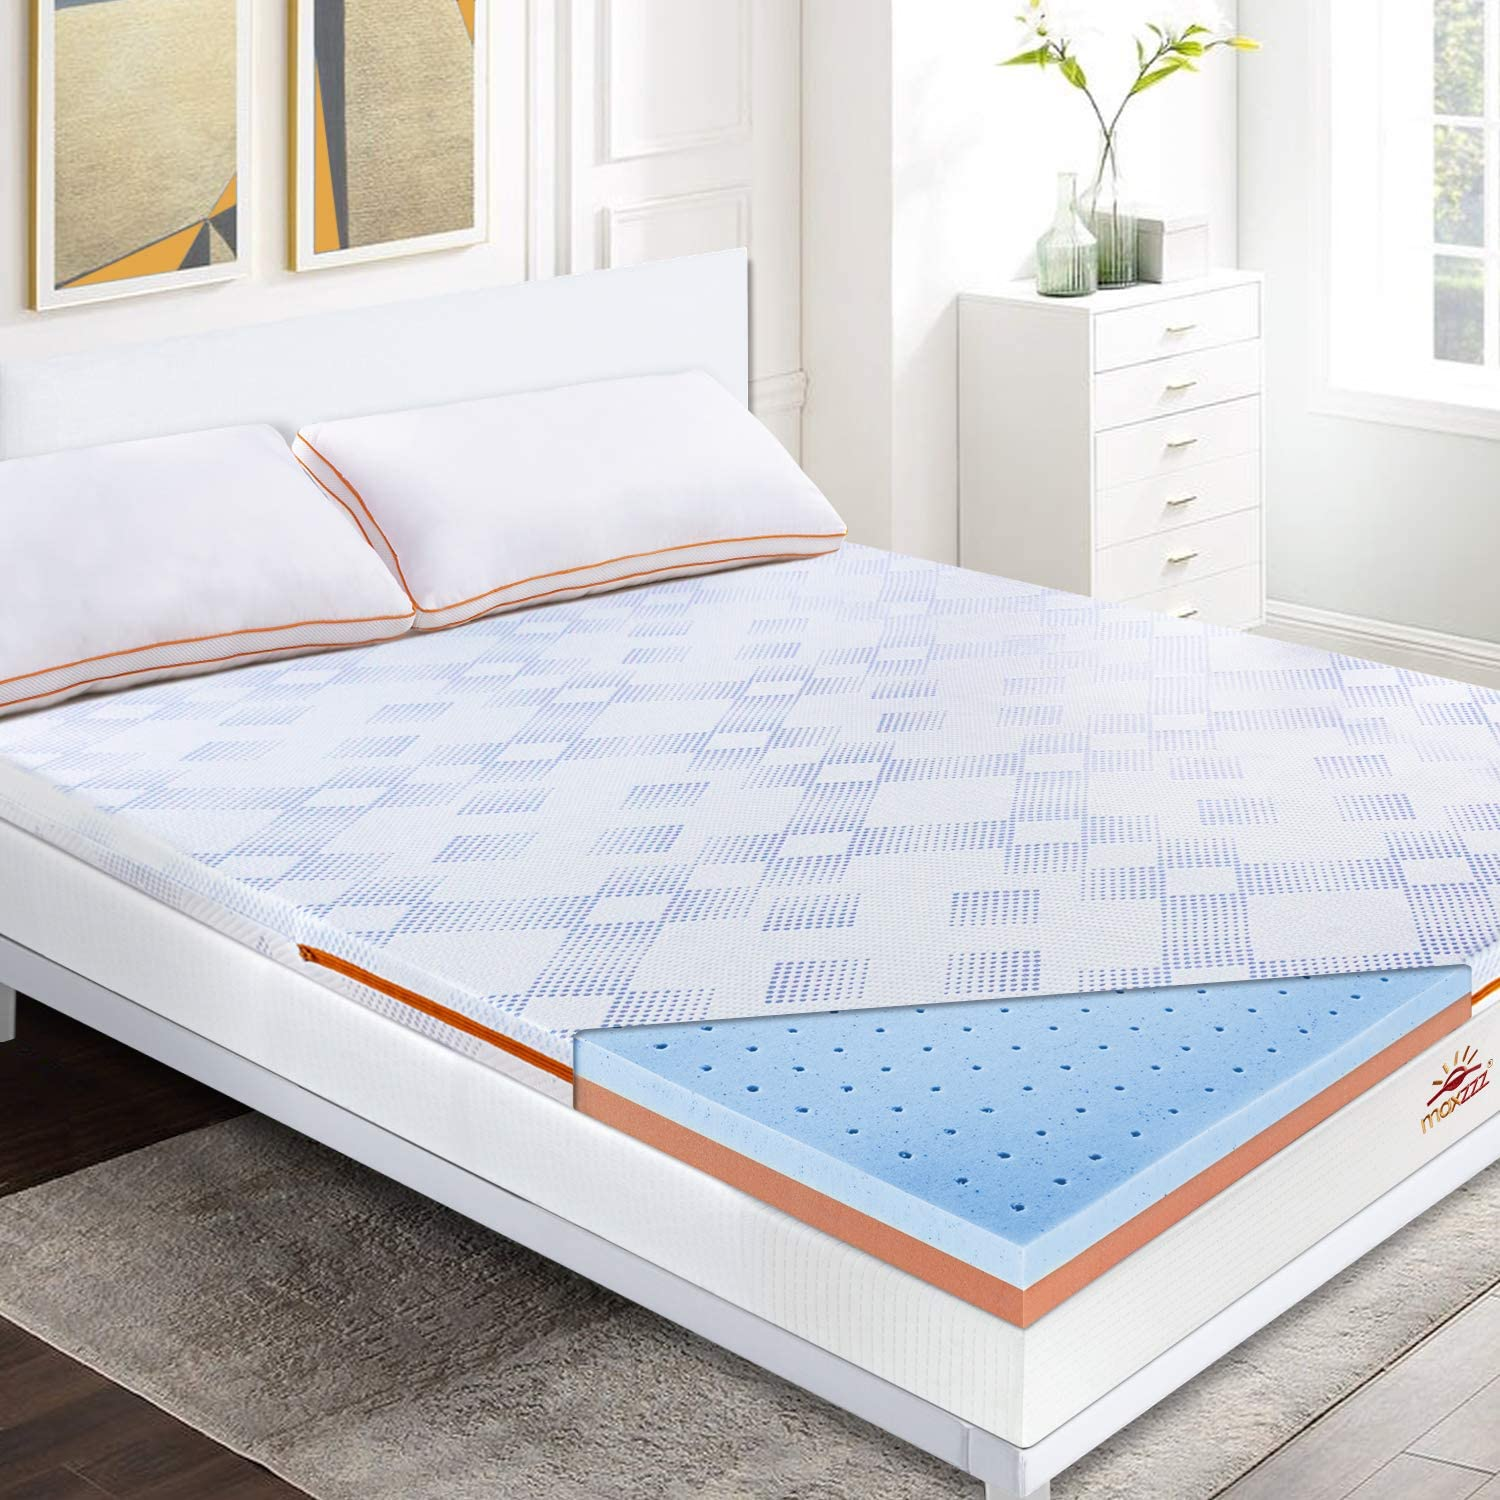 Maxzzz 3 Inch Gel Infused Memory Foam Mattress Topper, Cool & Hypoallergenic Foam Toppers for Bed with Washable Cover, Ventilated Designed & CertiPUR-US Certified Foam Bed Topper, Queen